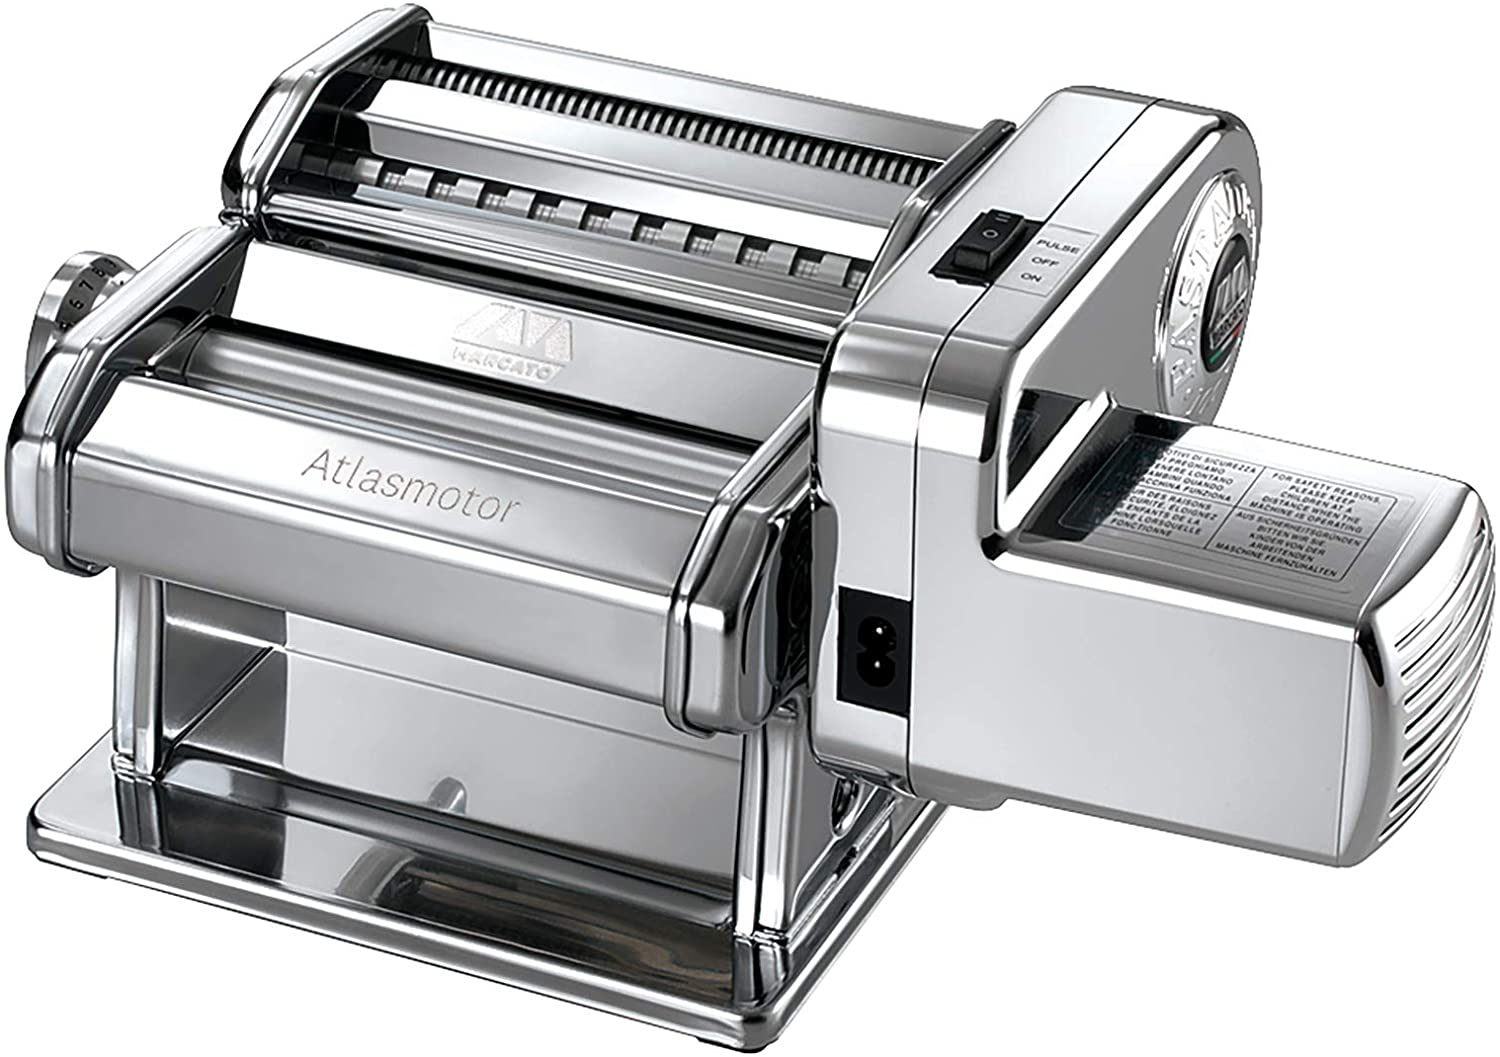 Marcato Pasta Machine with Motor